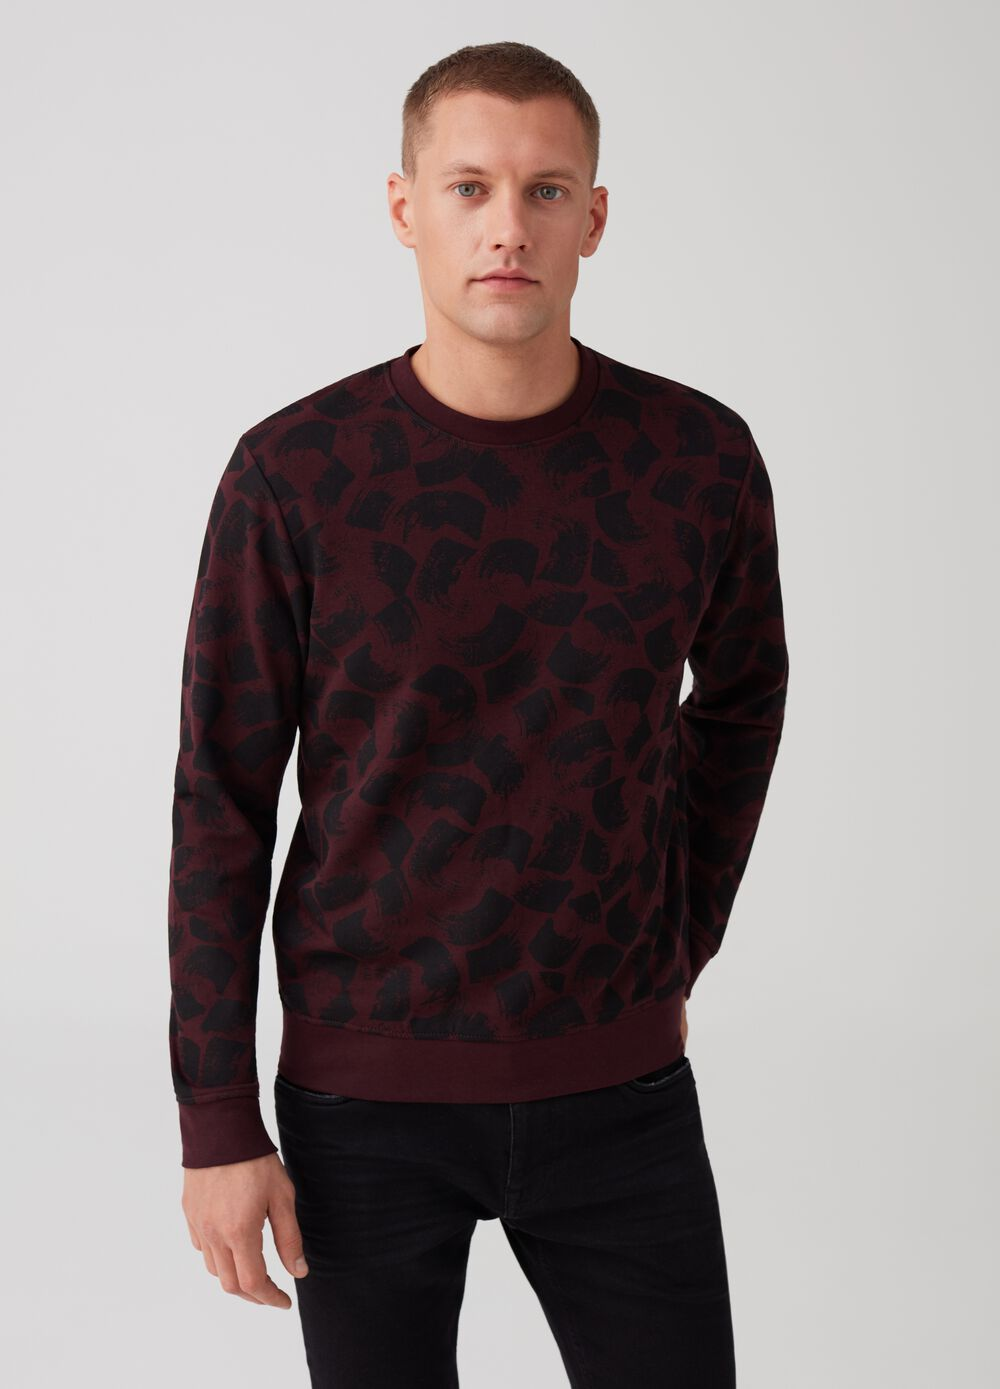 Sweatshirt with round neck and print